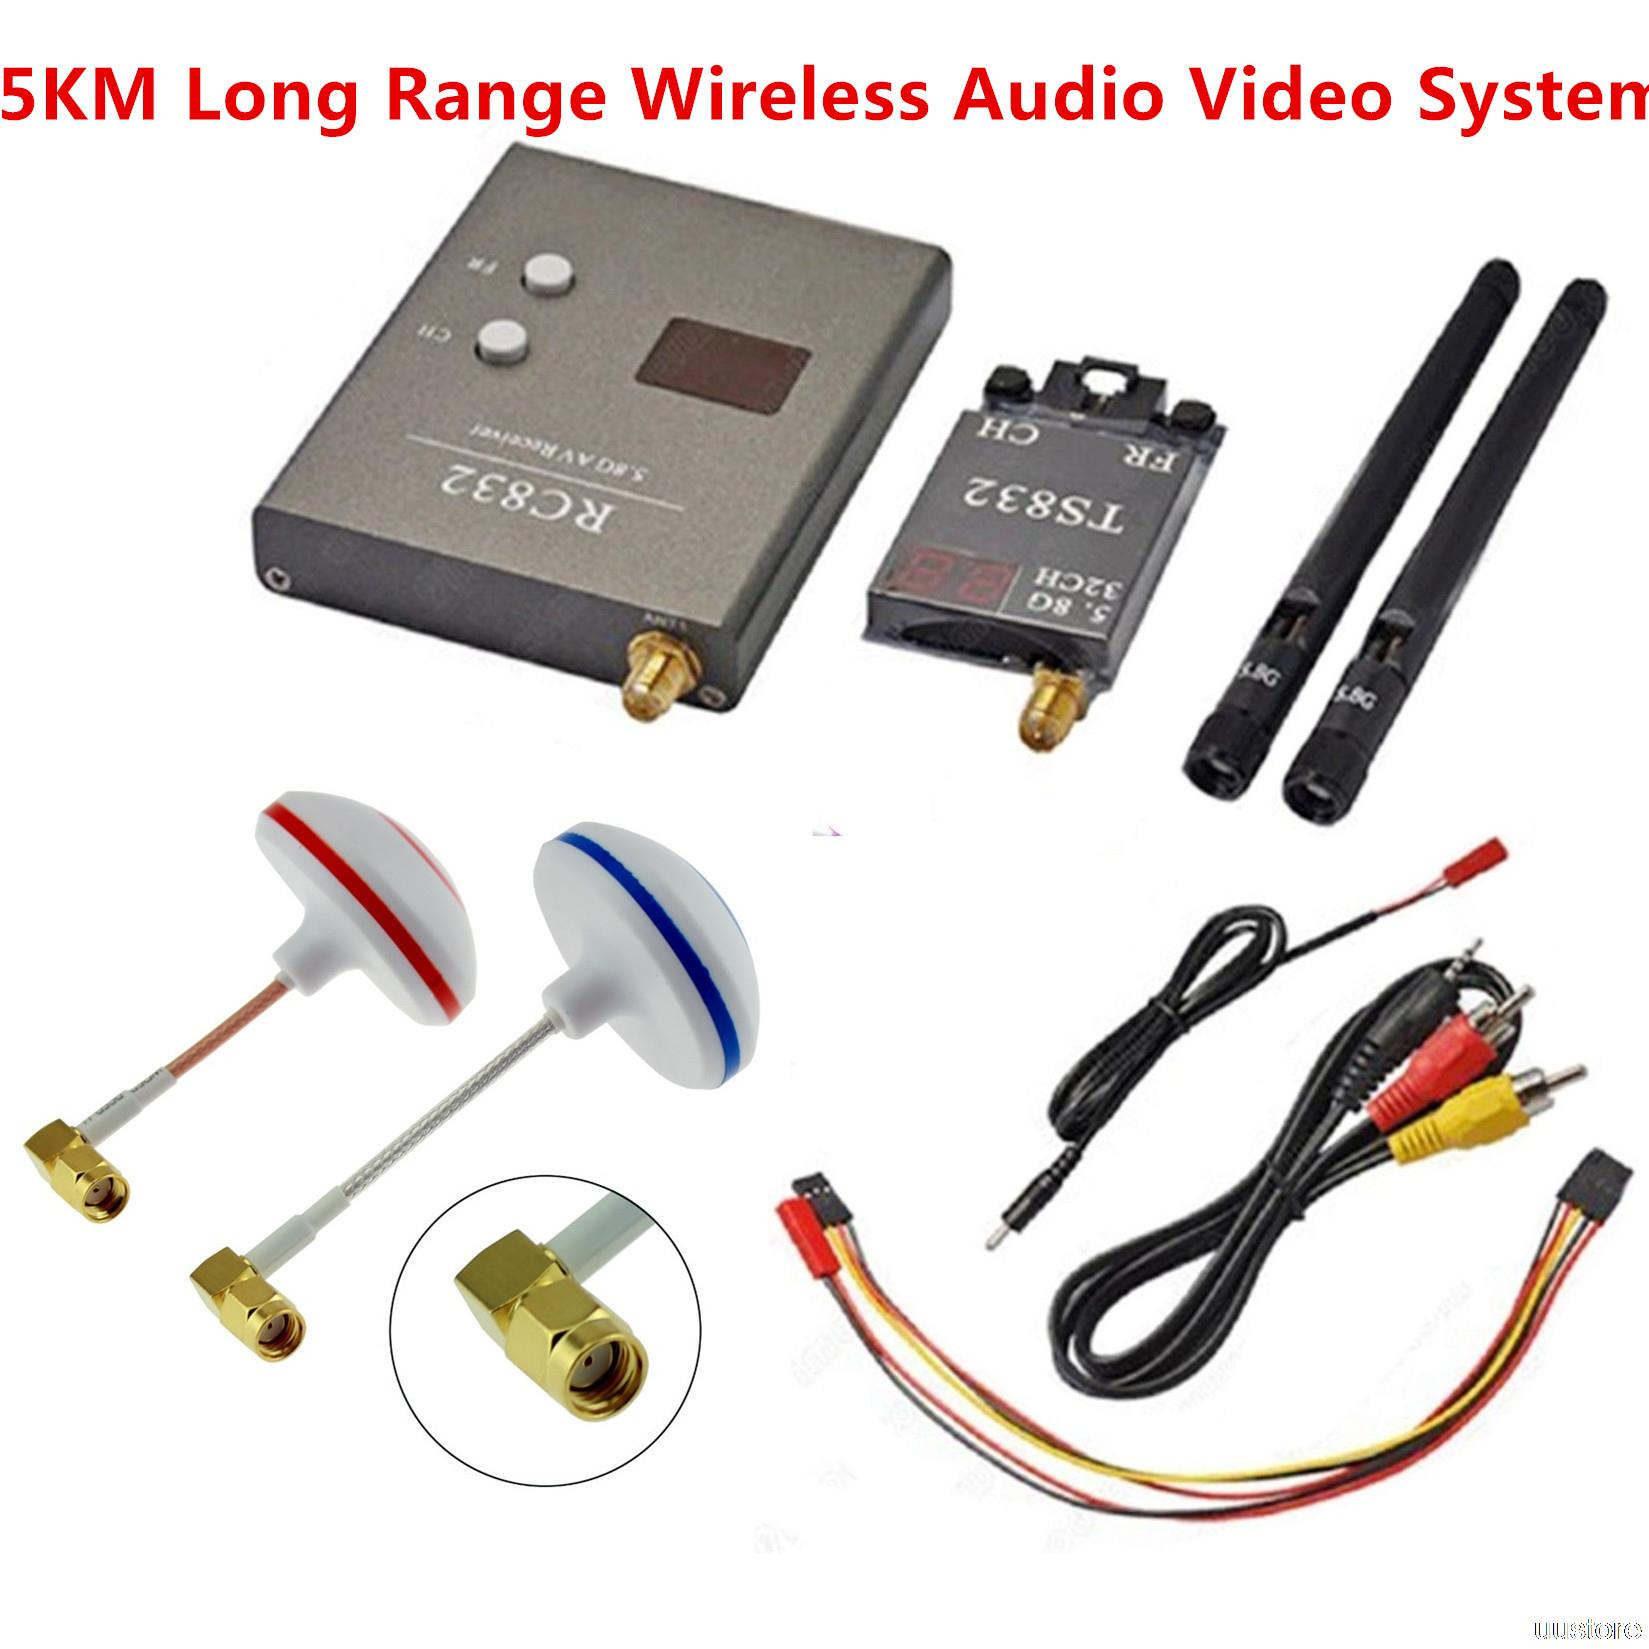 FPV 5.8GHz 600mW Wireless Audio Video Link 48CH Transmitter TS832 & Receiver RC832 For Camera Drone Remote Control(China (Mainland))